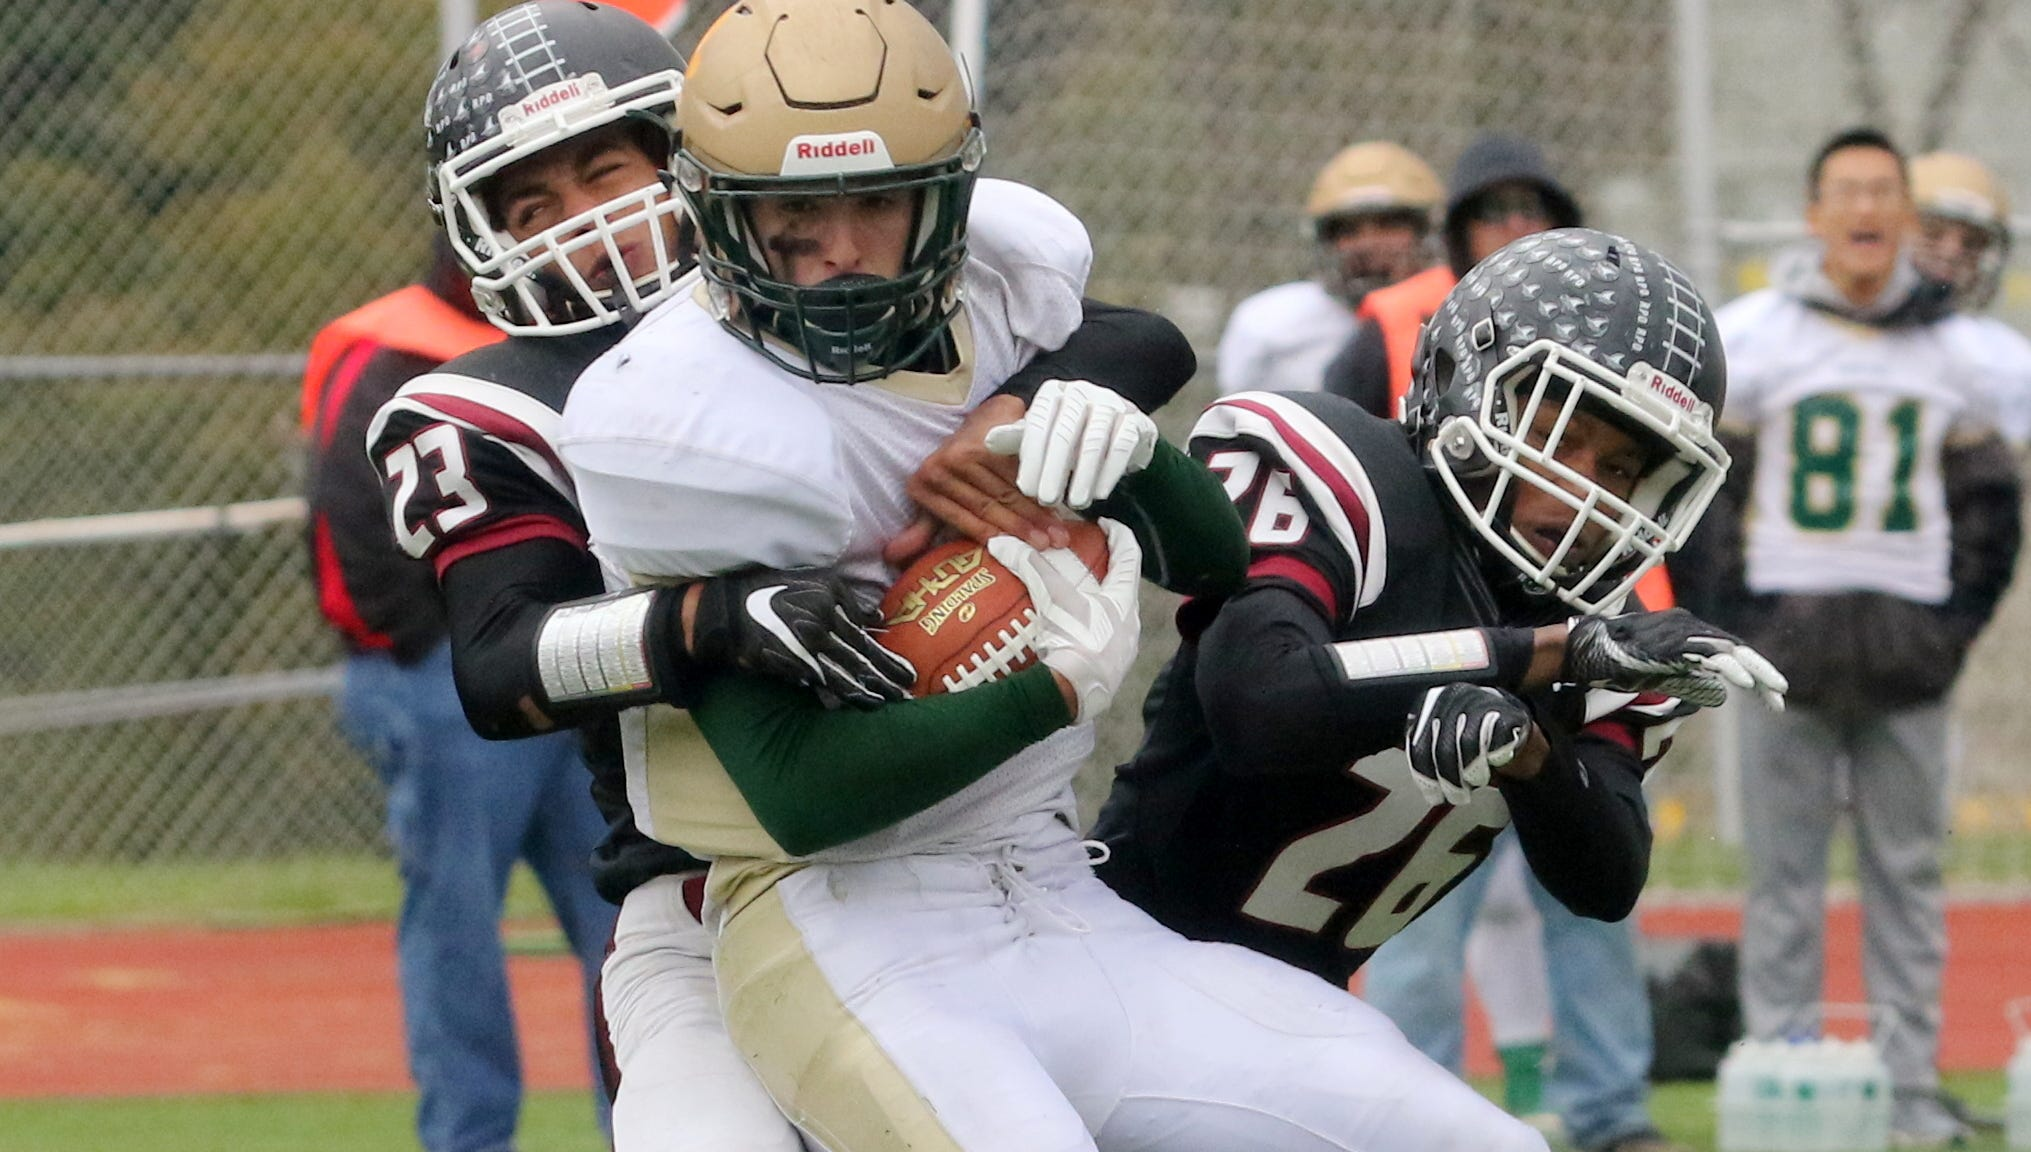 Vestal was a 30-28 winner over Elmira in football Oct. 20, 2018 at Ernie Davis Academy.